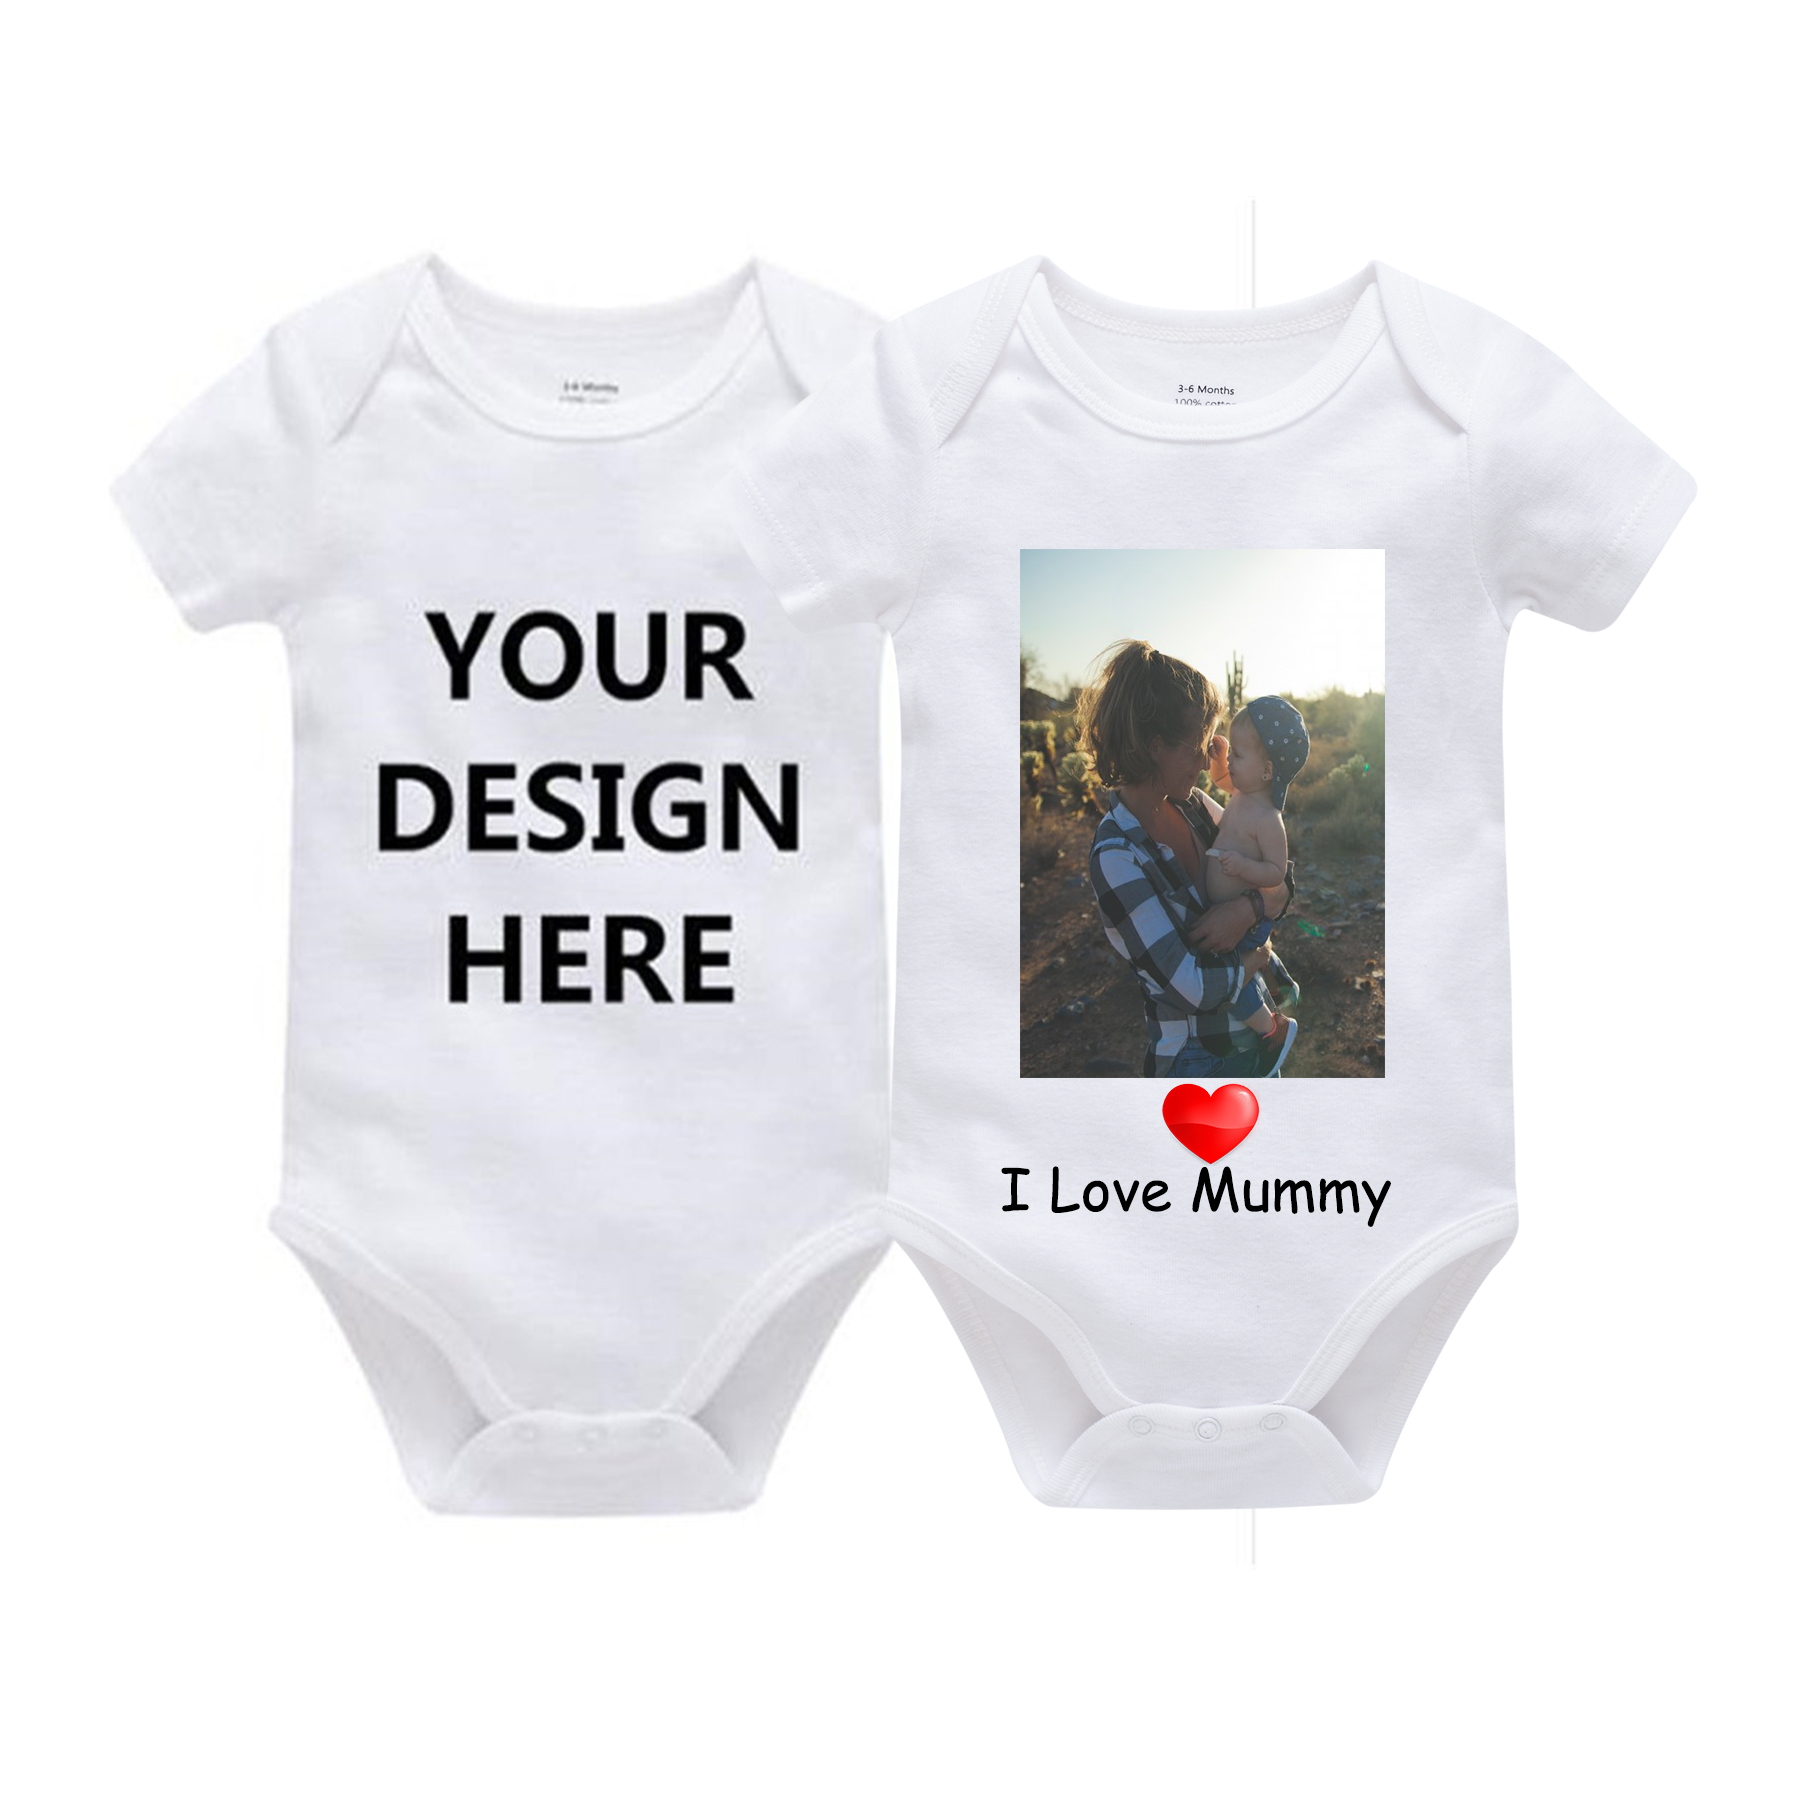 Custom Printed One Piece Outfits Cotton Newborn Boy Girl 0-24 Months White Body Bebes Blanco Roupa Menina Solid New Baby Jumper